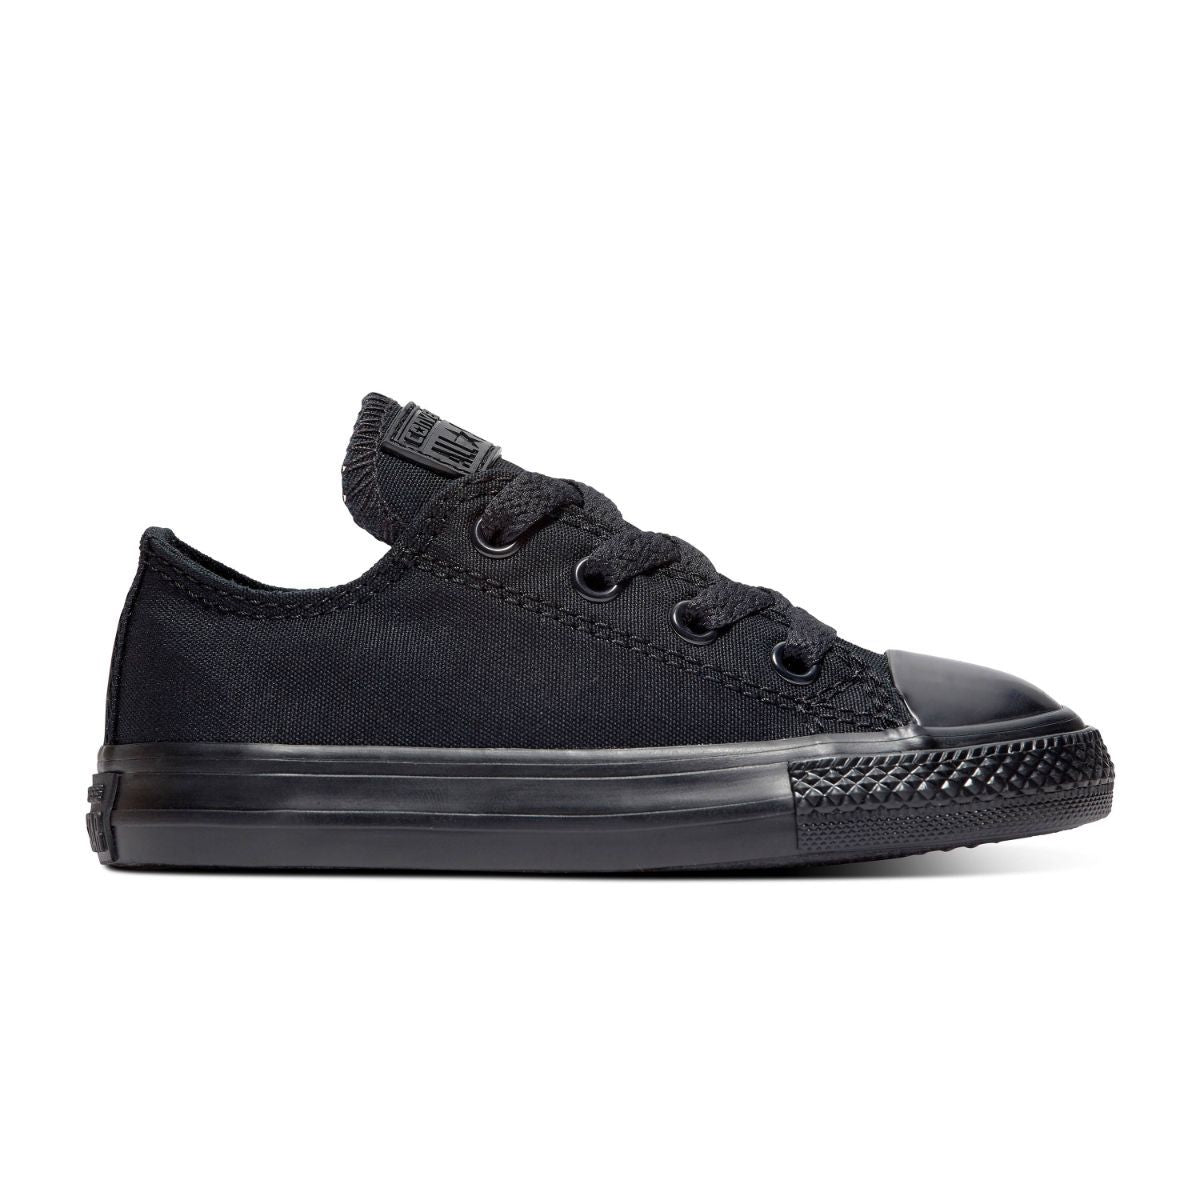 Toddler Chuck Taylor All Star Black Low Top